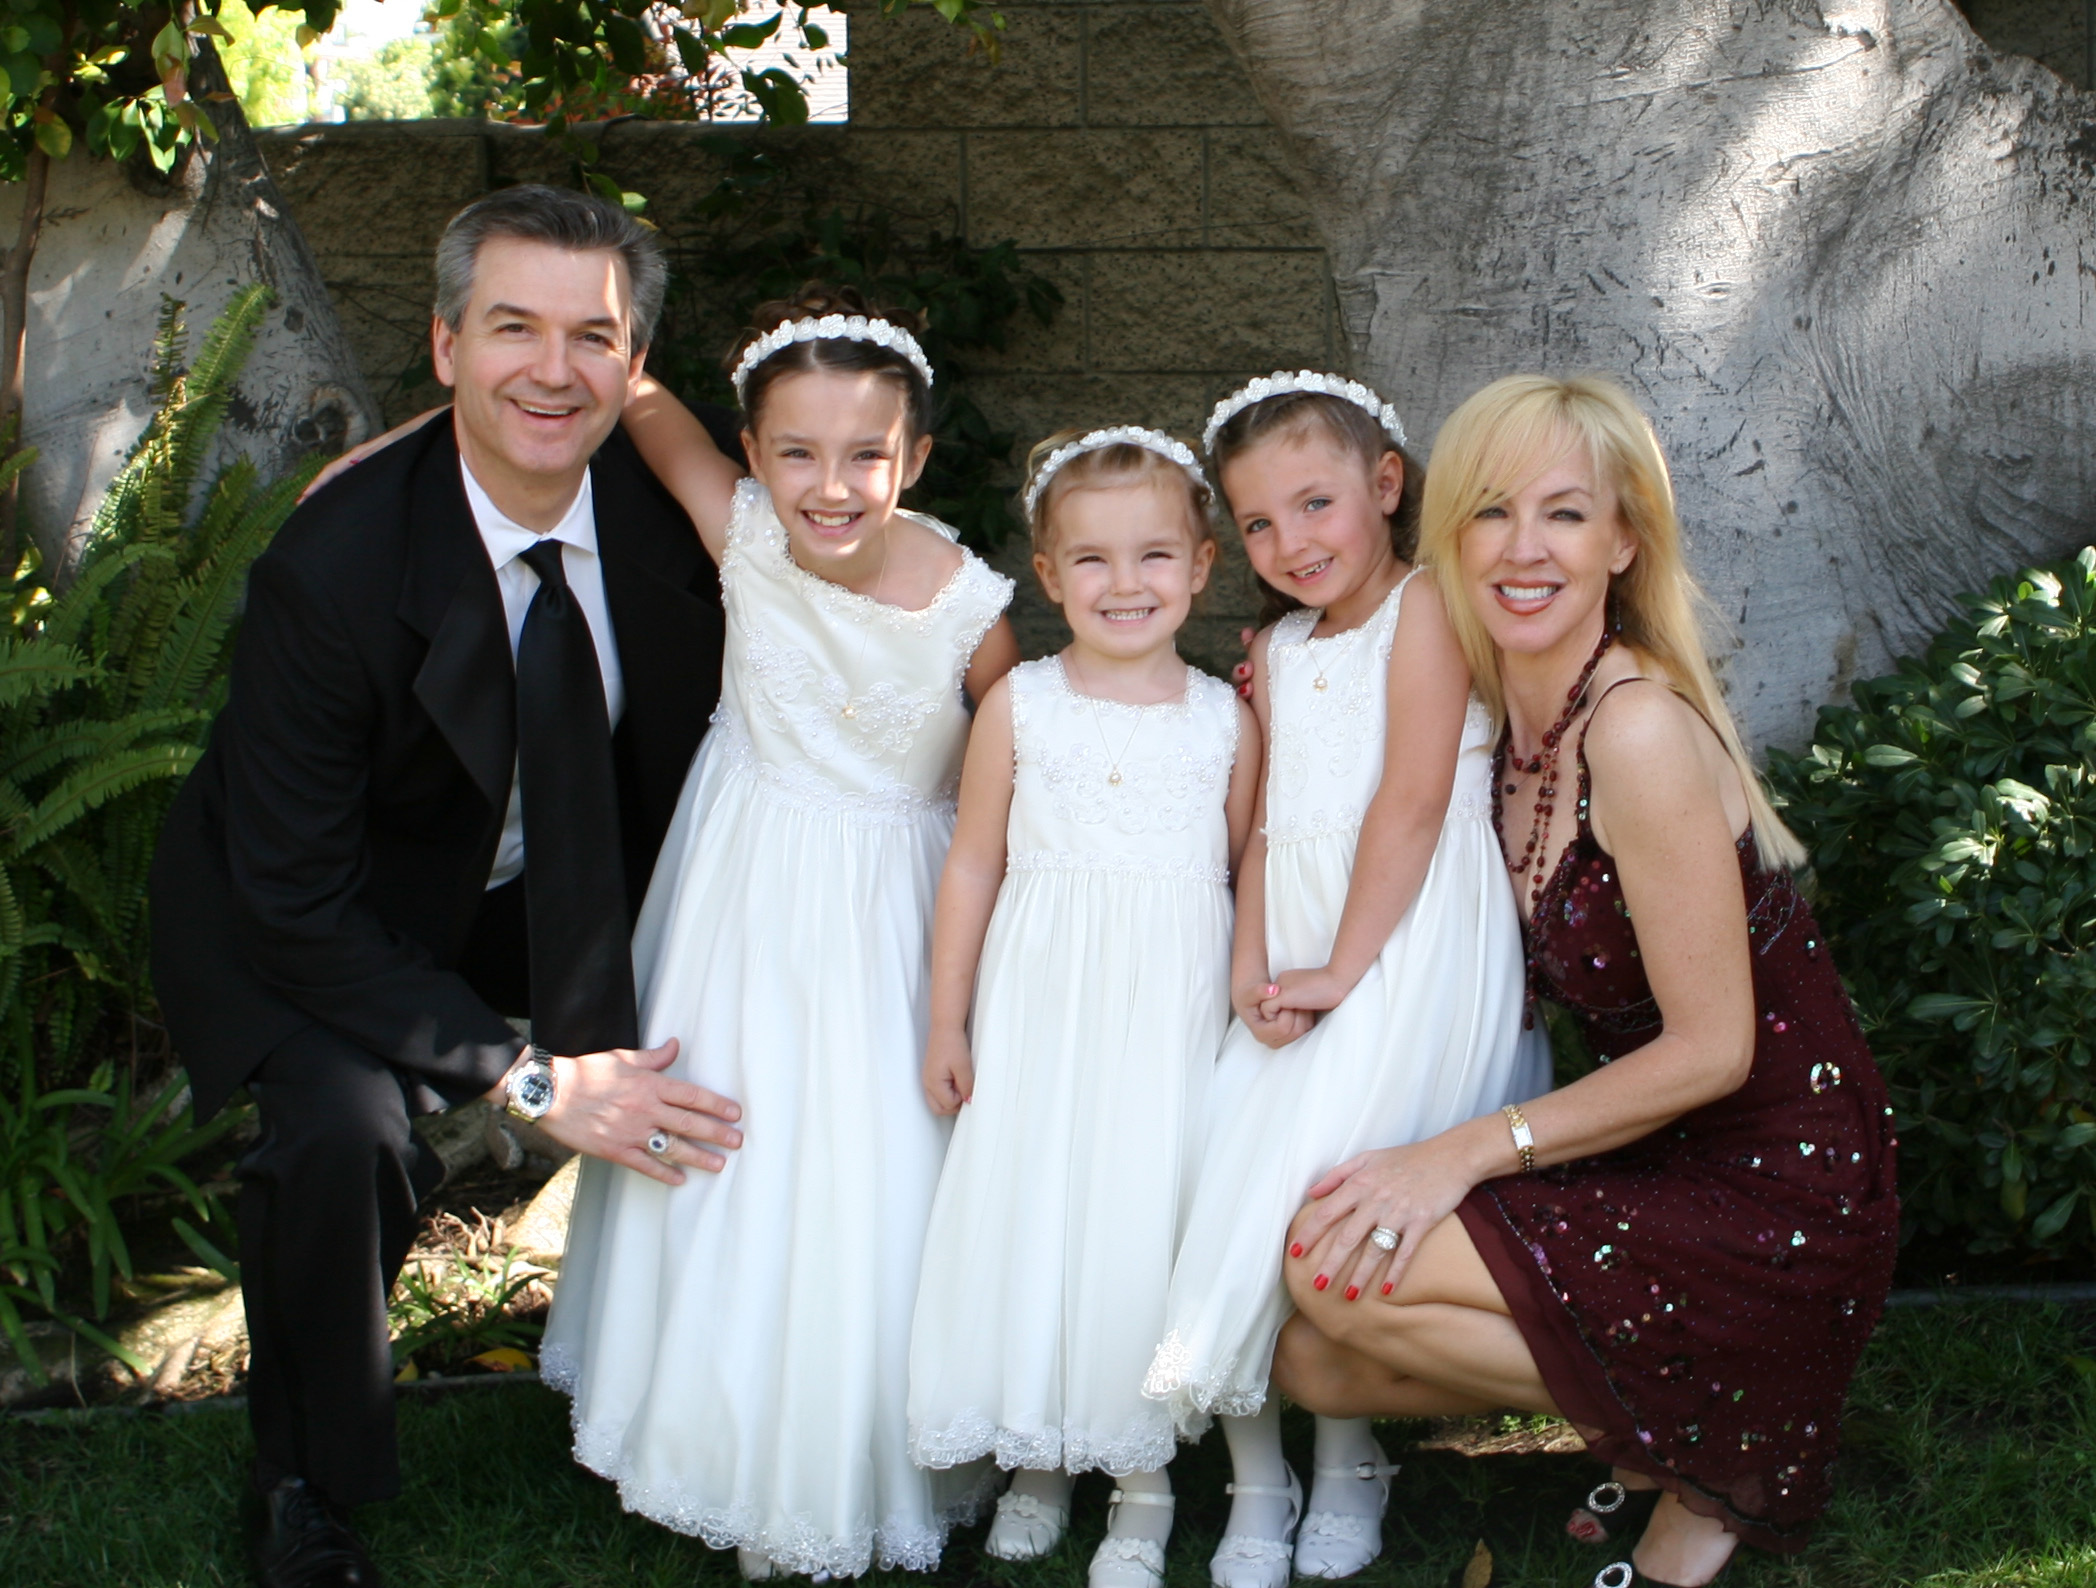 Dr. Sexton Dermatologist in Irvine, California with his wife Robin and his daughters Colette, Camille and Chloe